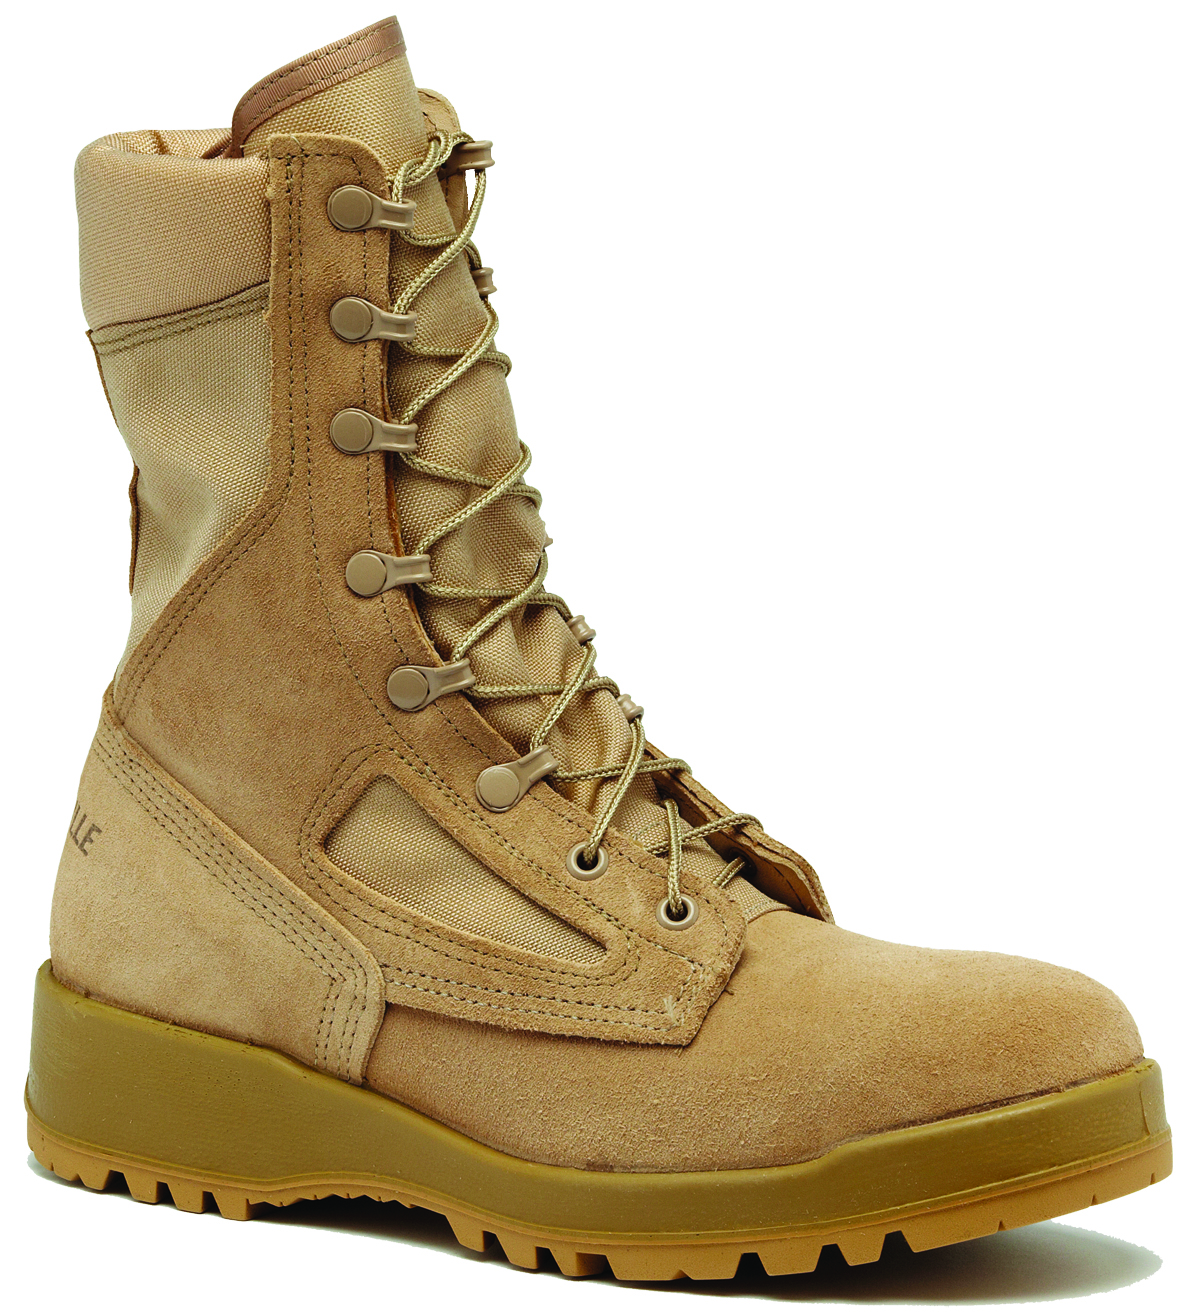 U.S. Army Military ACU Boots on Sale - Free Exchanges